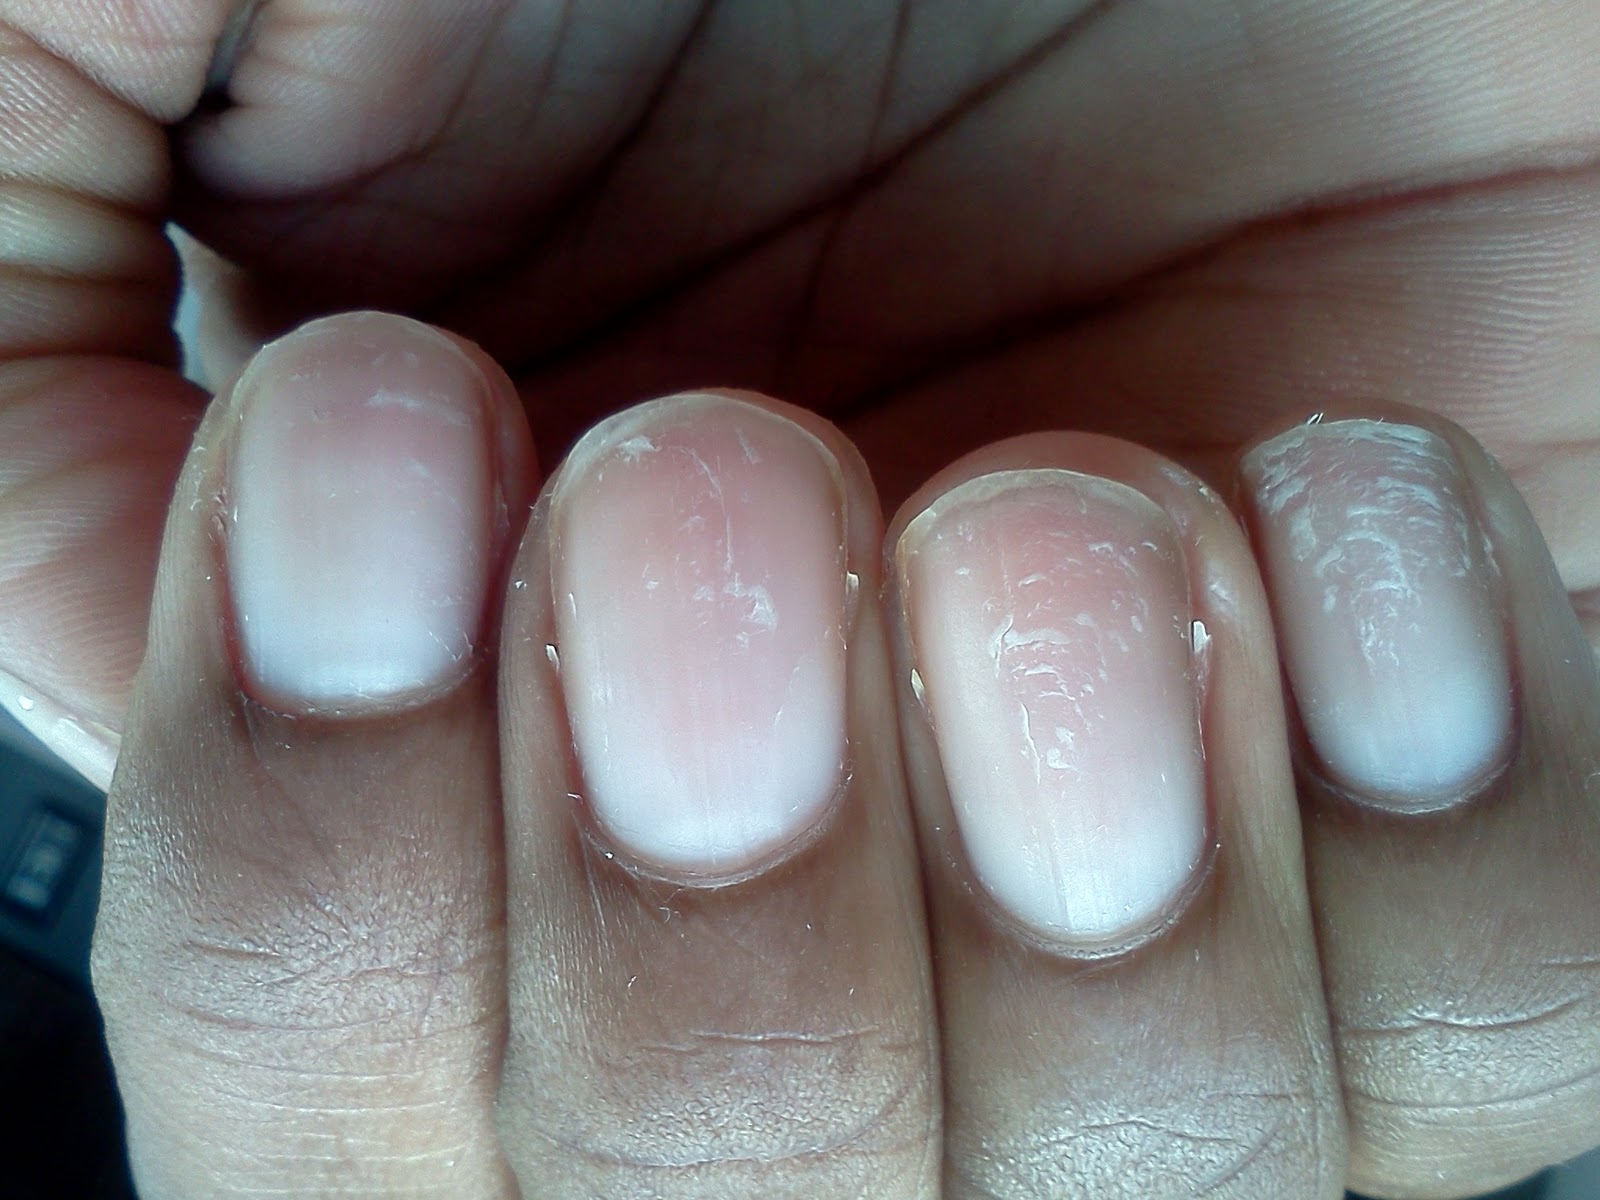 Or Acrylic Set With Not Only The Brittle Nails But Indentations Still Pretty At All I Think We Ll Stick To It For Special Occasions